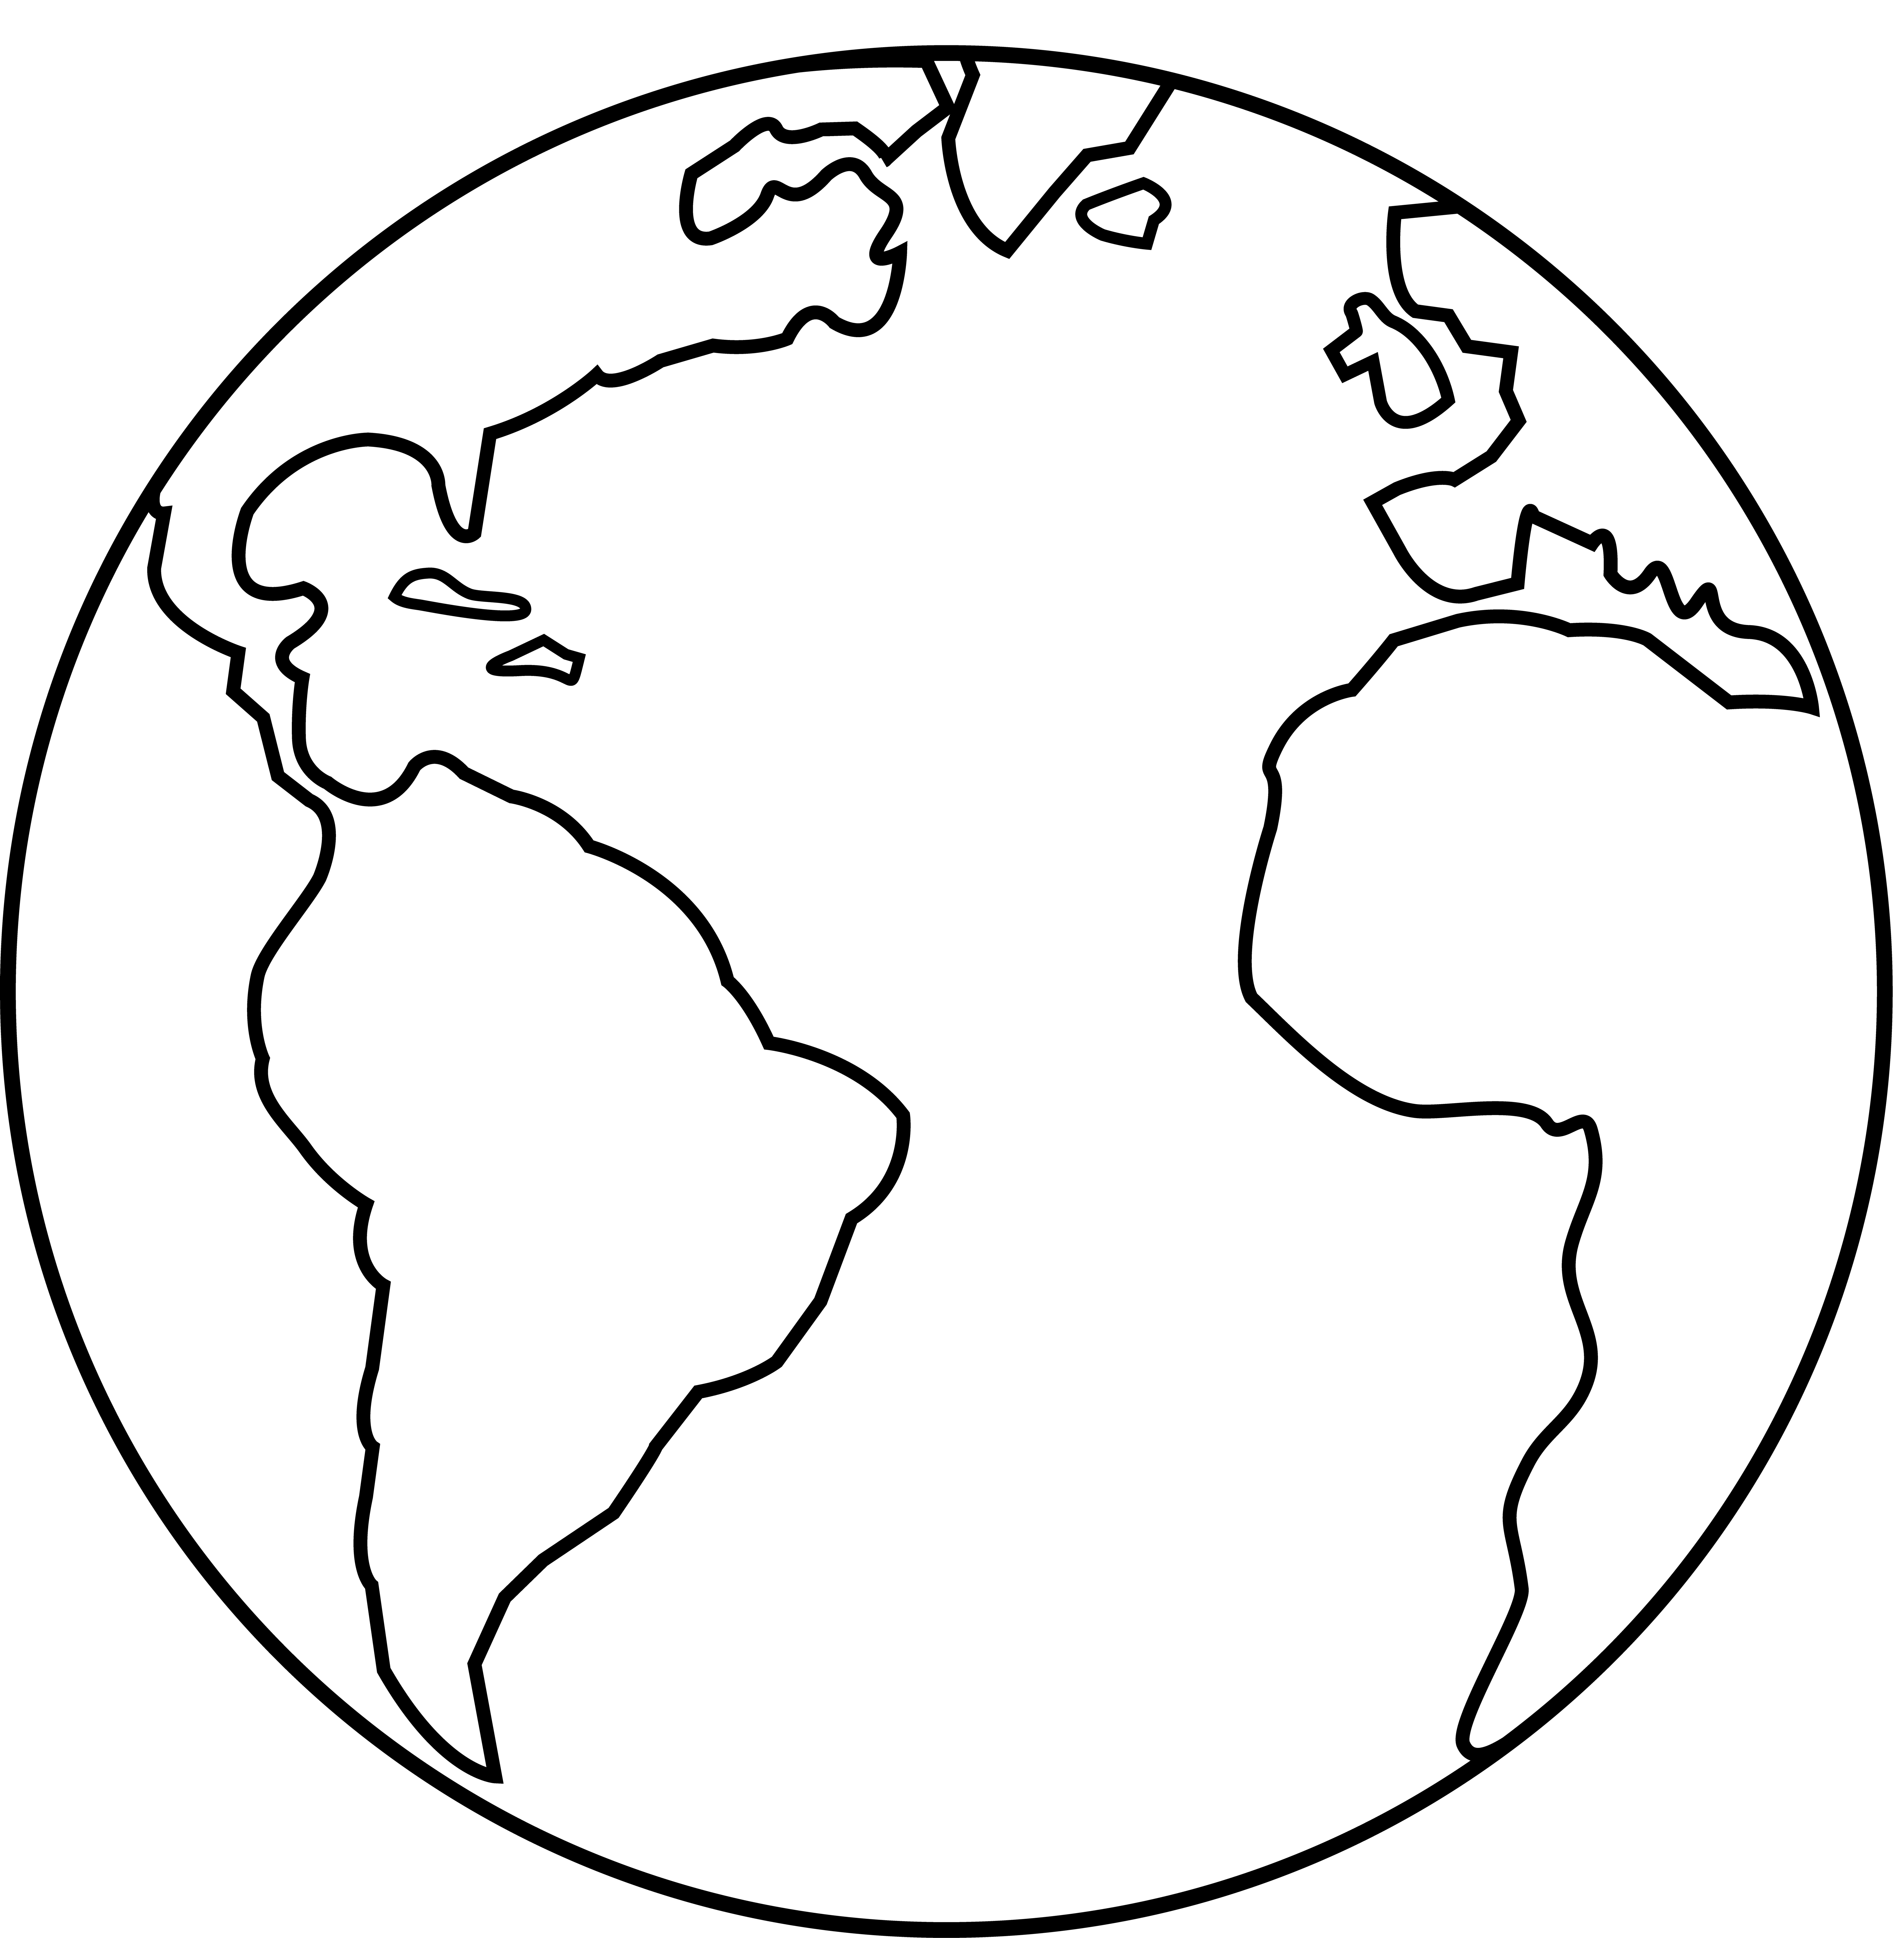 Planet Earth Clipart & Planet Earth Clip Art Images.